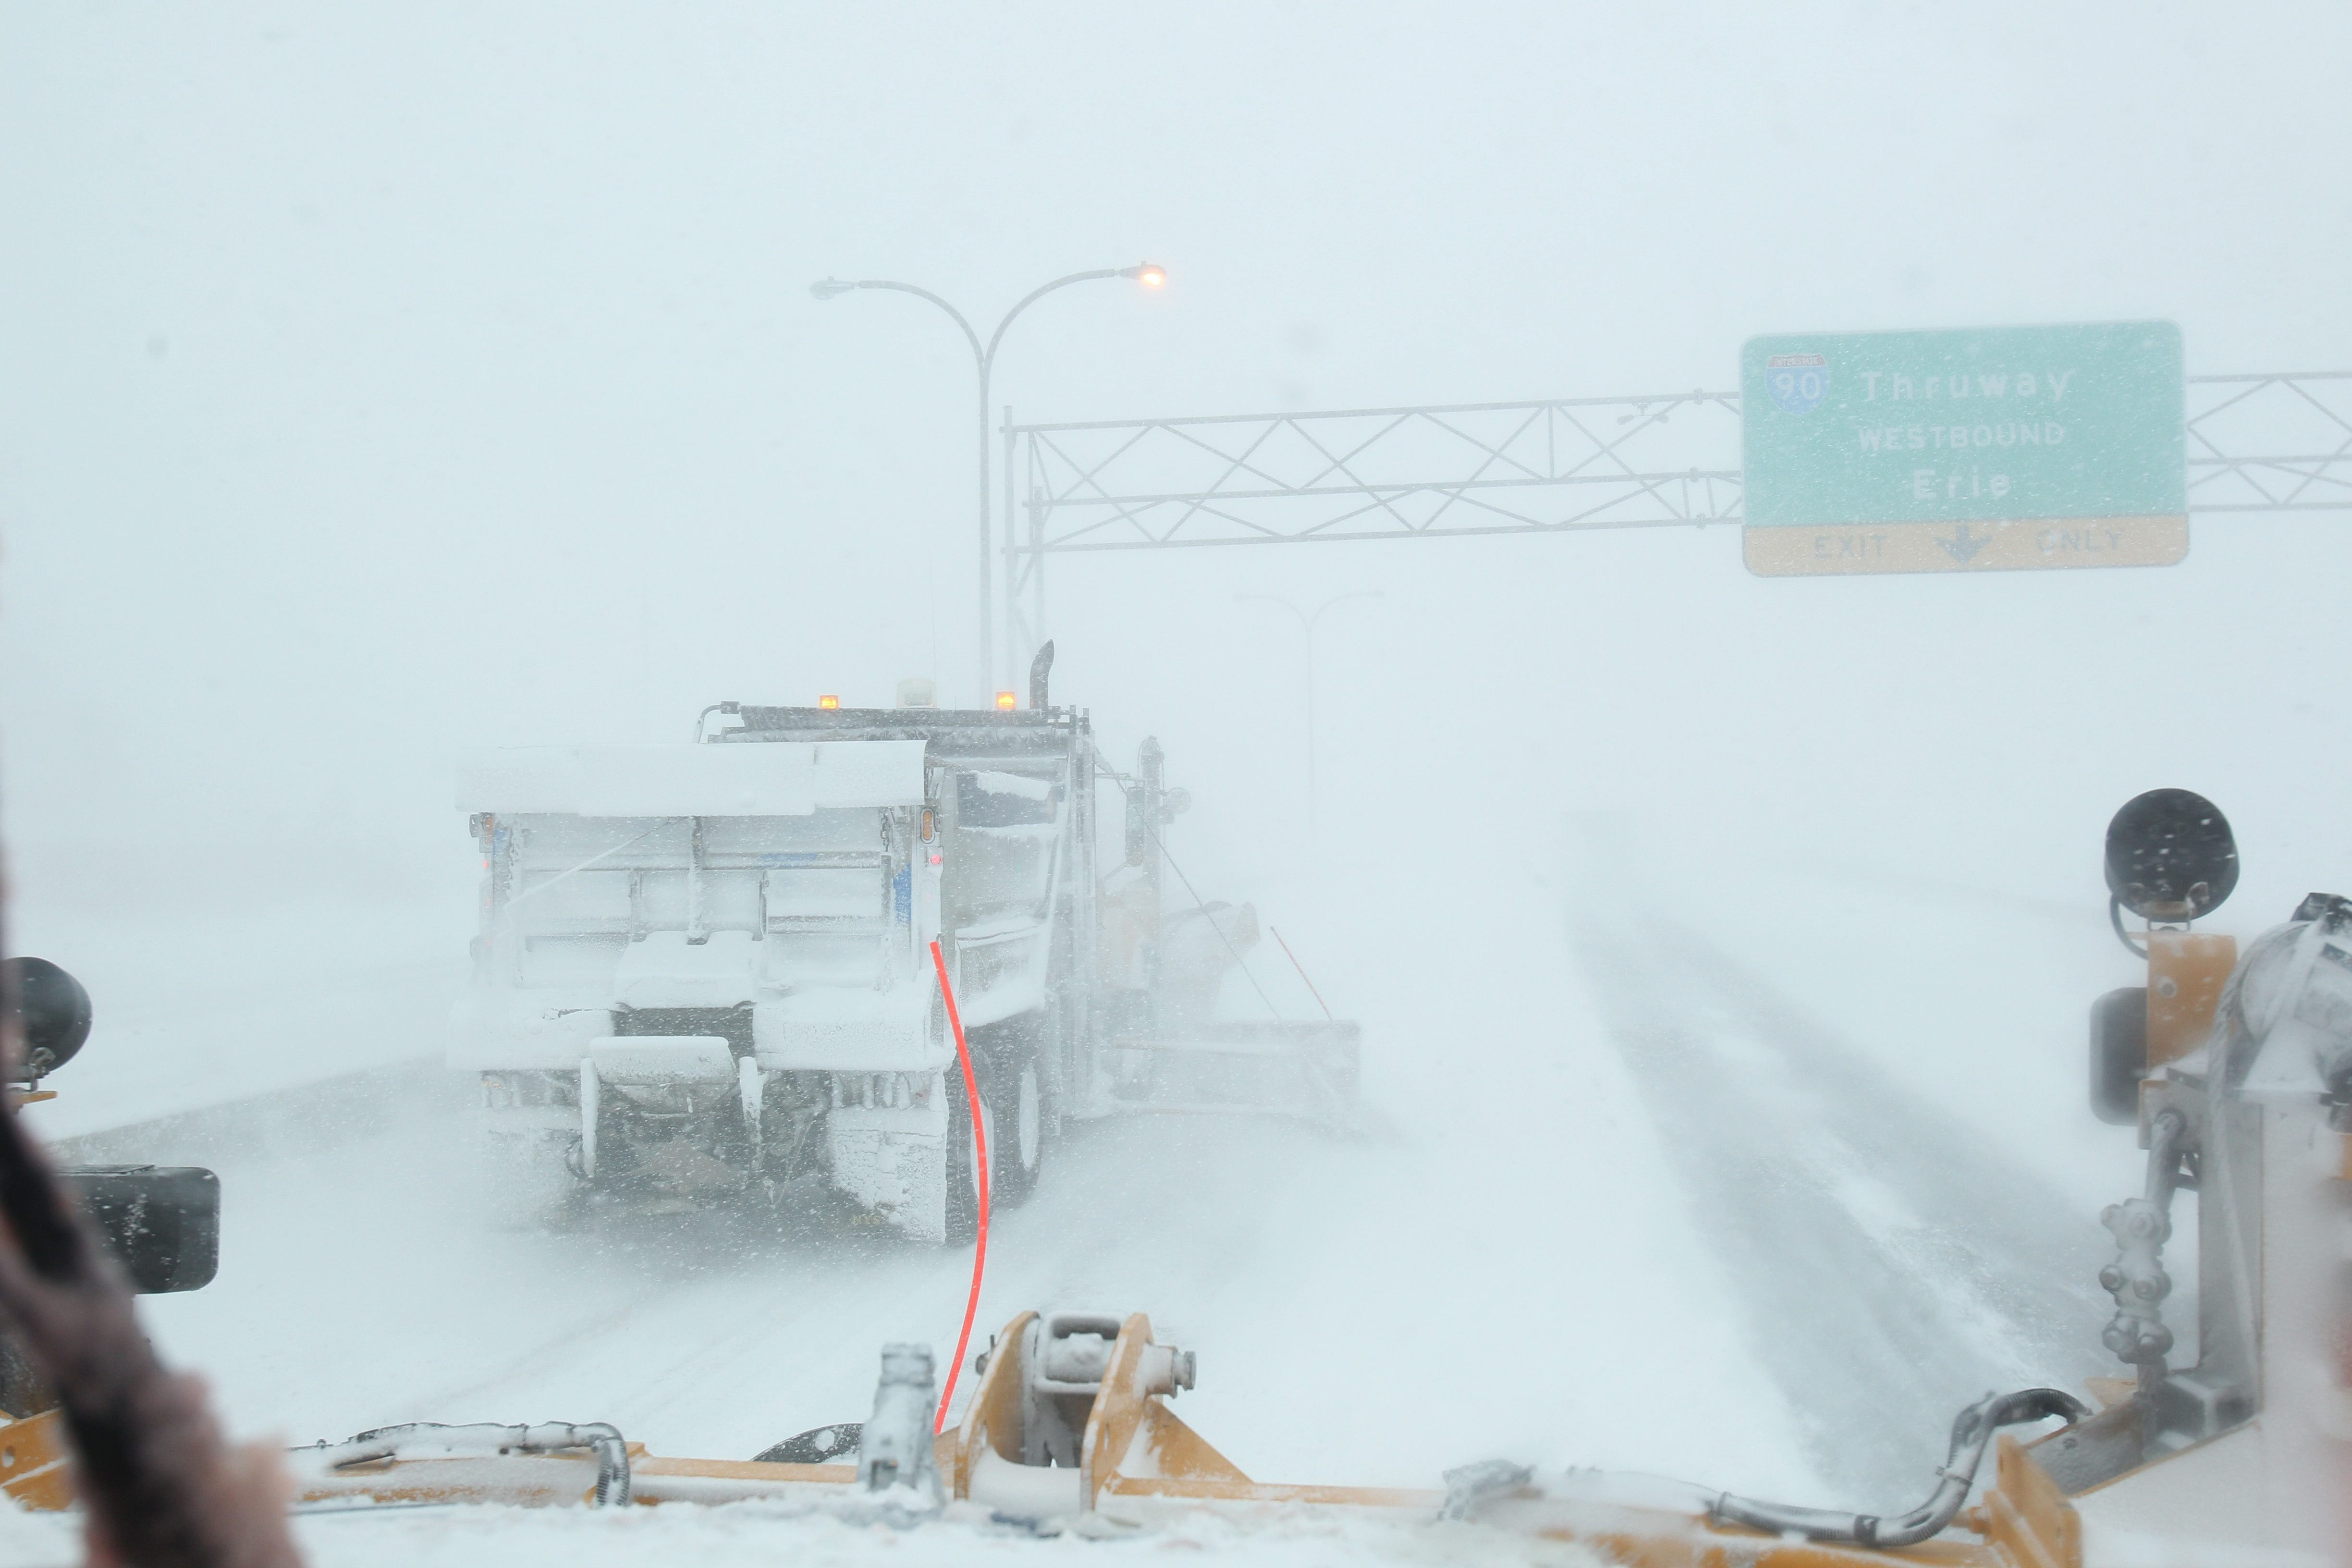 Plowing is one of those jobs that's overlooked until something goes wrong. (Sharon Cantillon/News file photo)